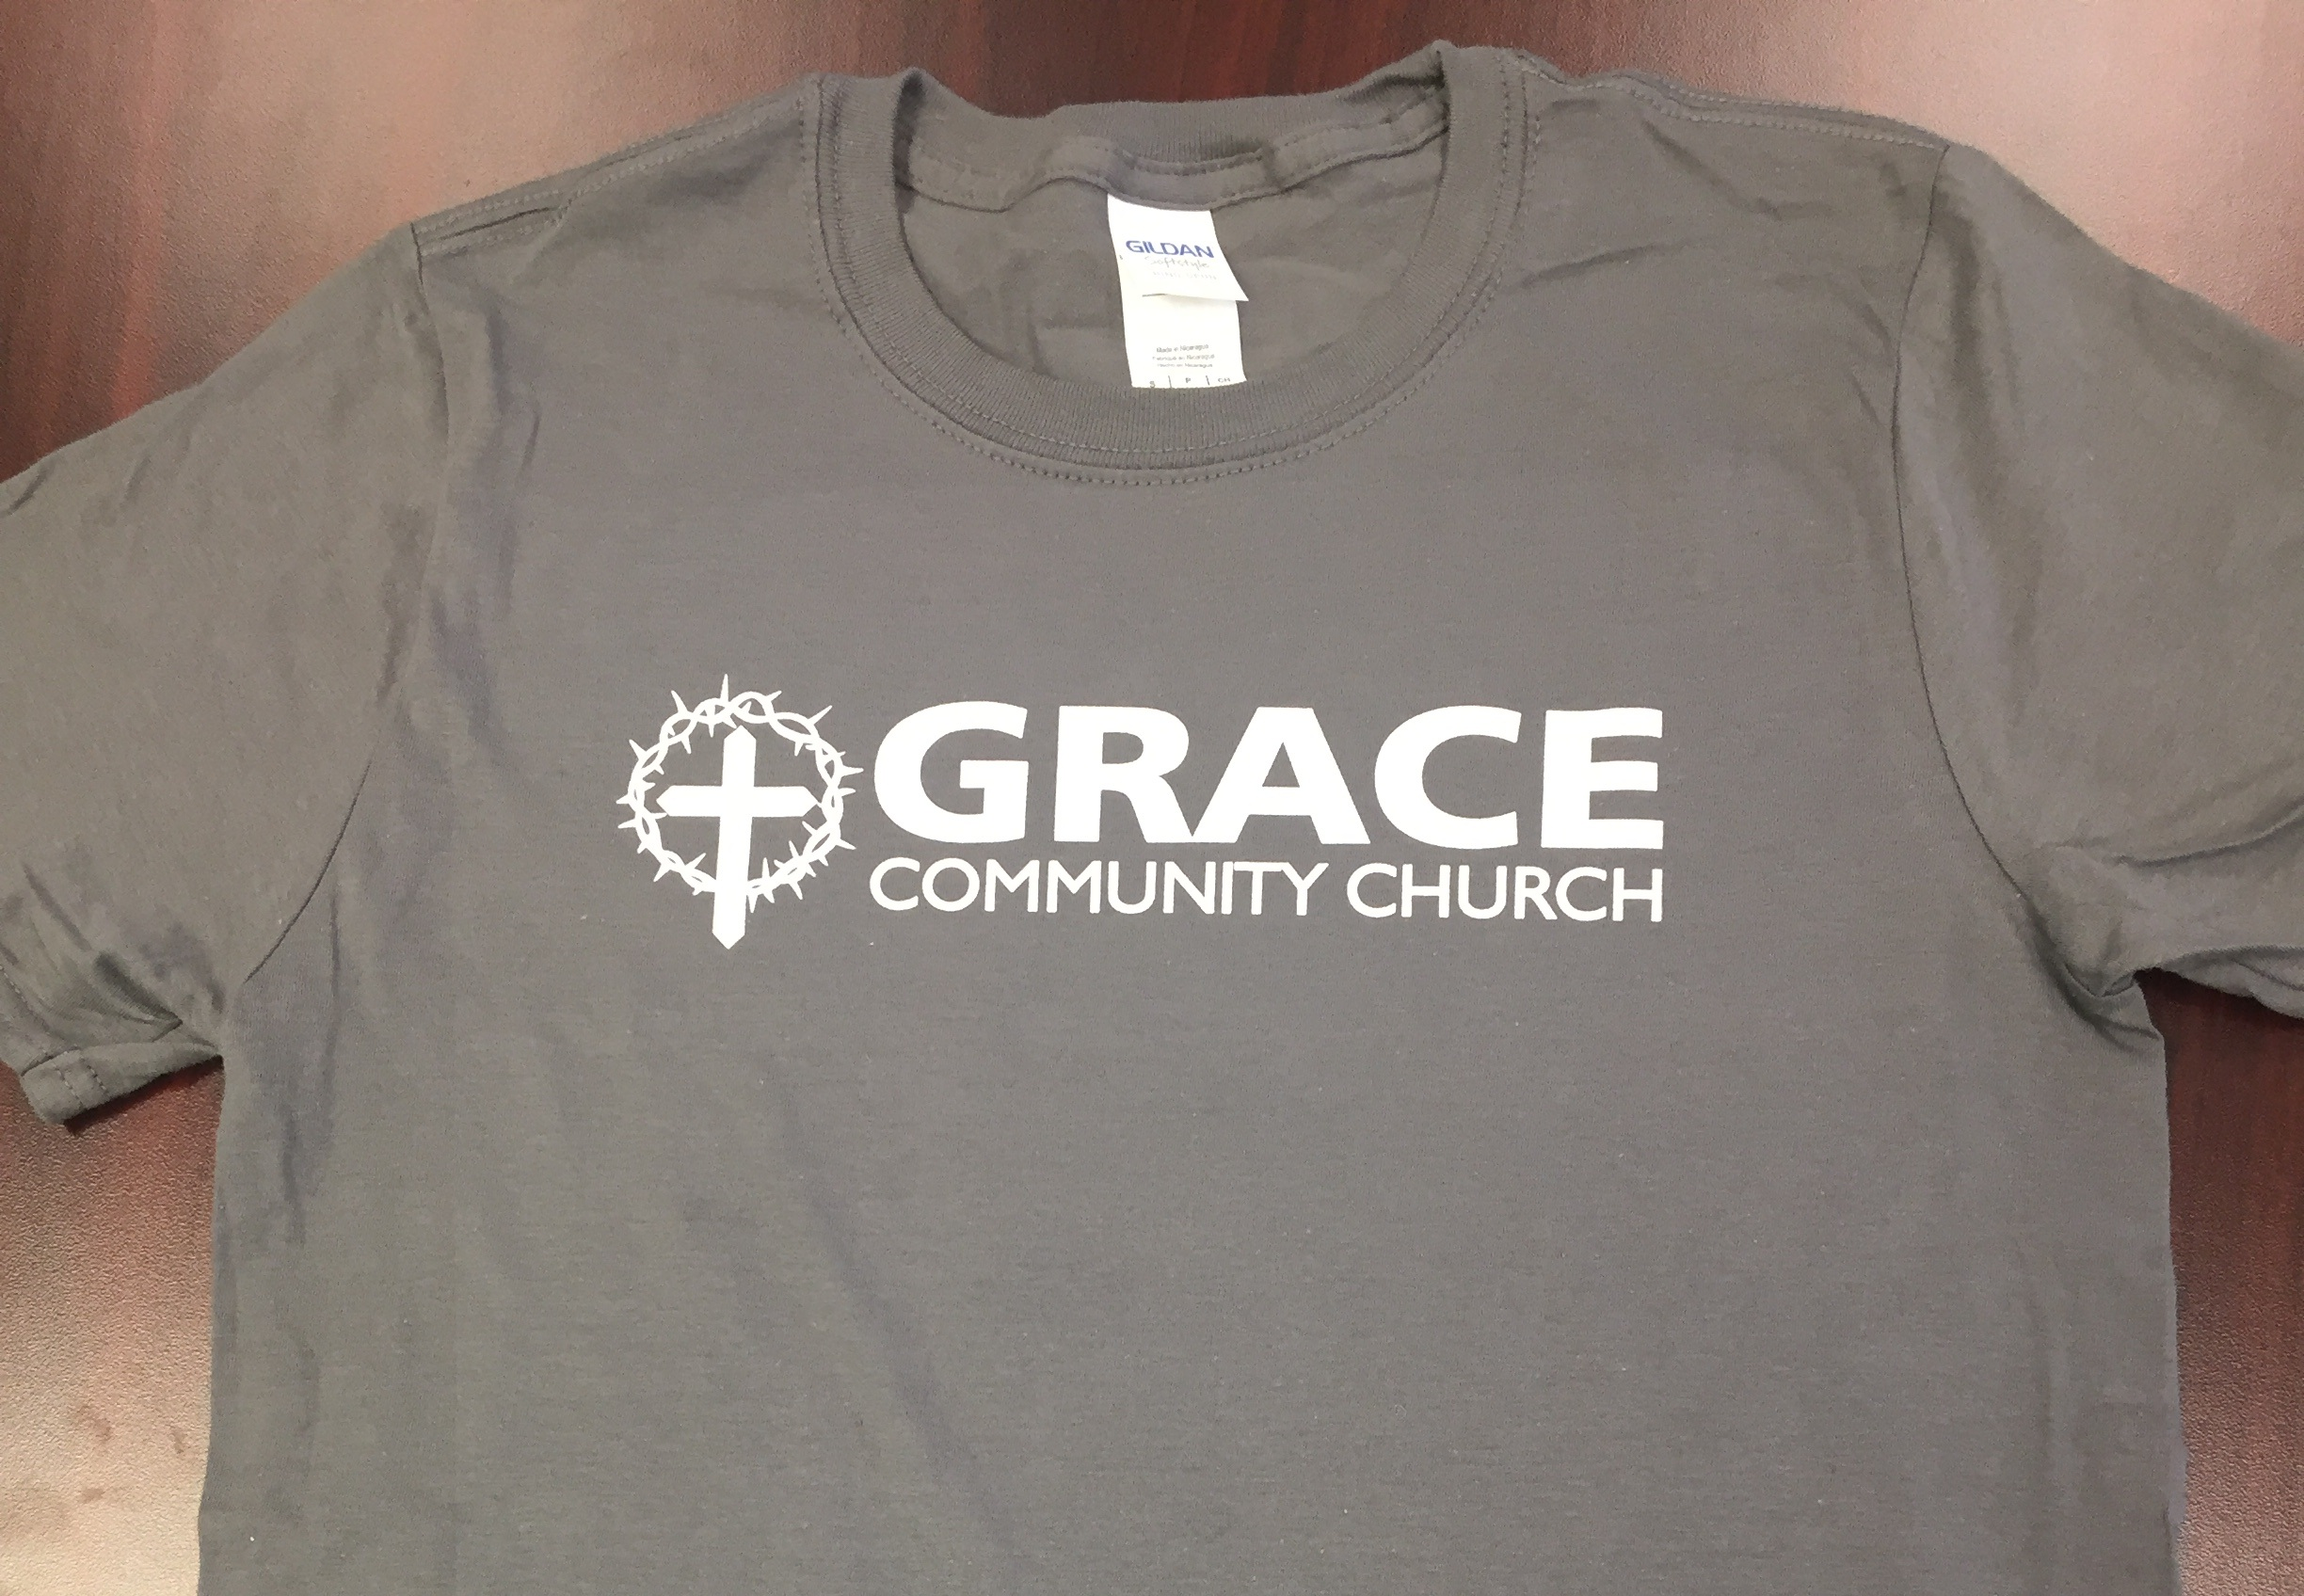 Logo t-shirt in Gray $15 - To purchase, please complete the form below.